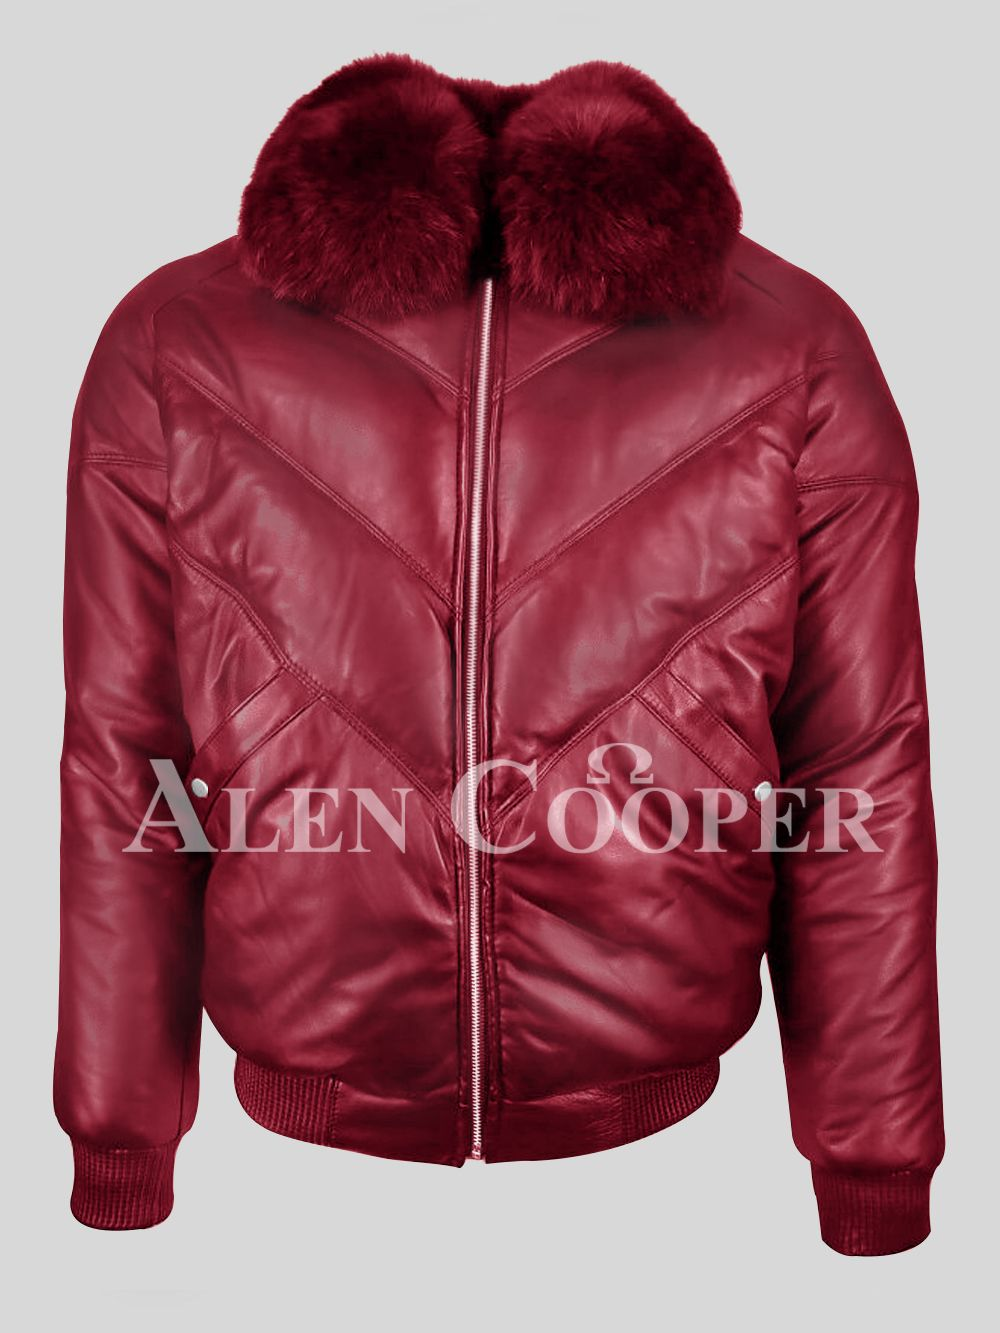 Super Stylish Real Leather Wine V Bomber Jacket For Men With Wine Fur In 2020 Fur Leather Jacket Bomber Jacket Men Leather Bomber Jacket